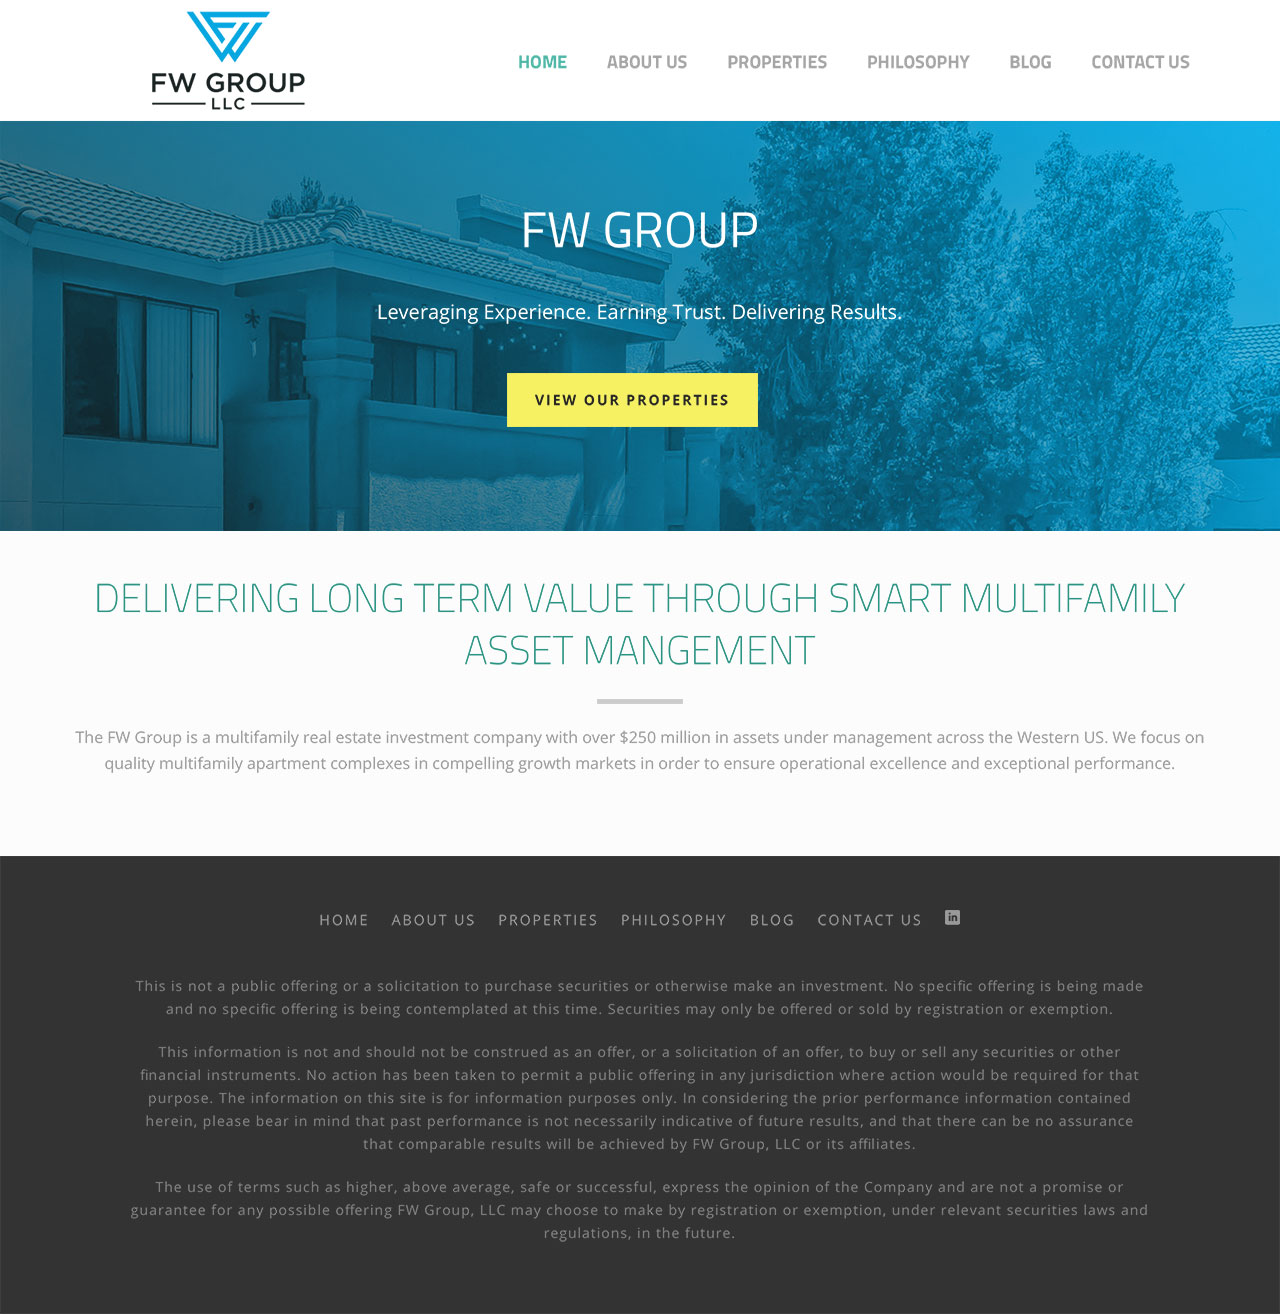 FW Group Website